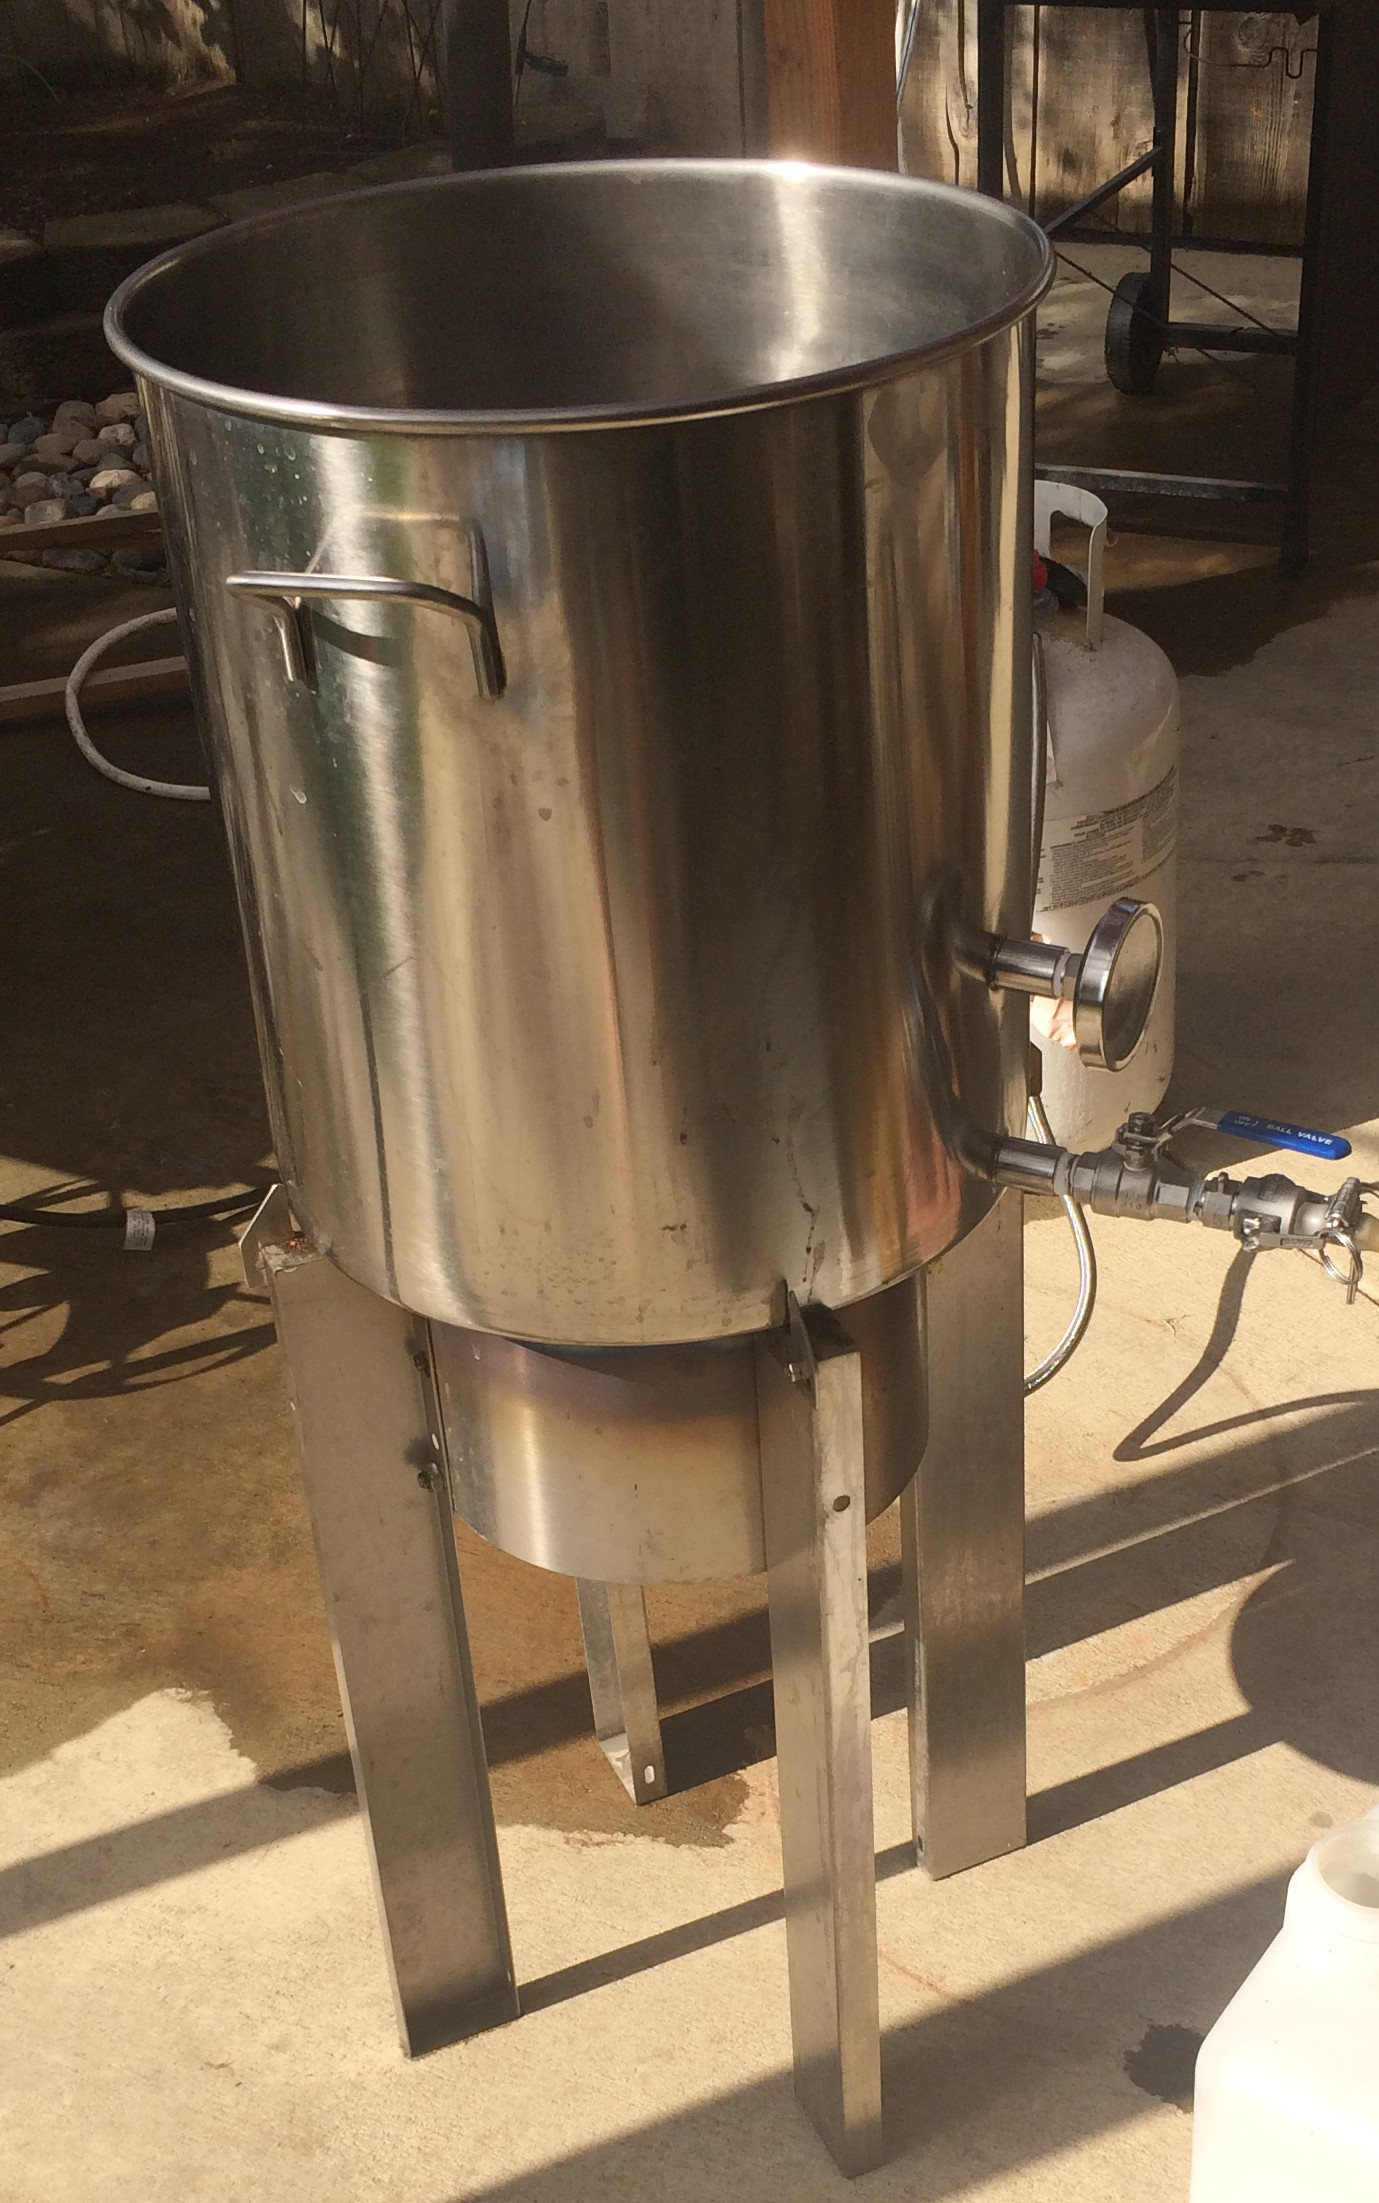 ... Blichmann Engineering Has Developed A Very Nice Floor Standing Burner  With A Similar 10u2033 Banjo That Can Be Modified To Sit 24u2033 Higher With The  Use Of ...